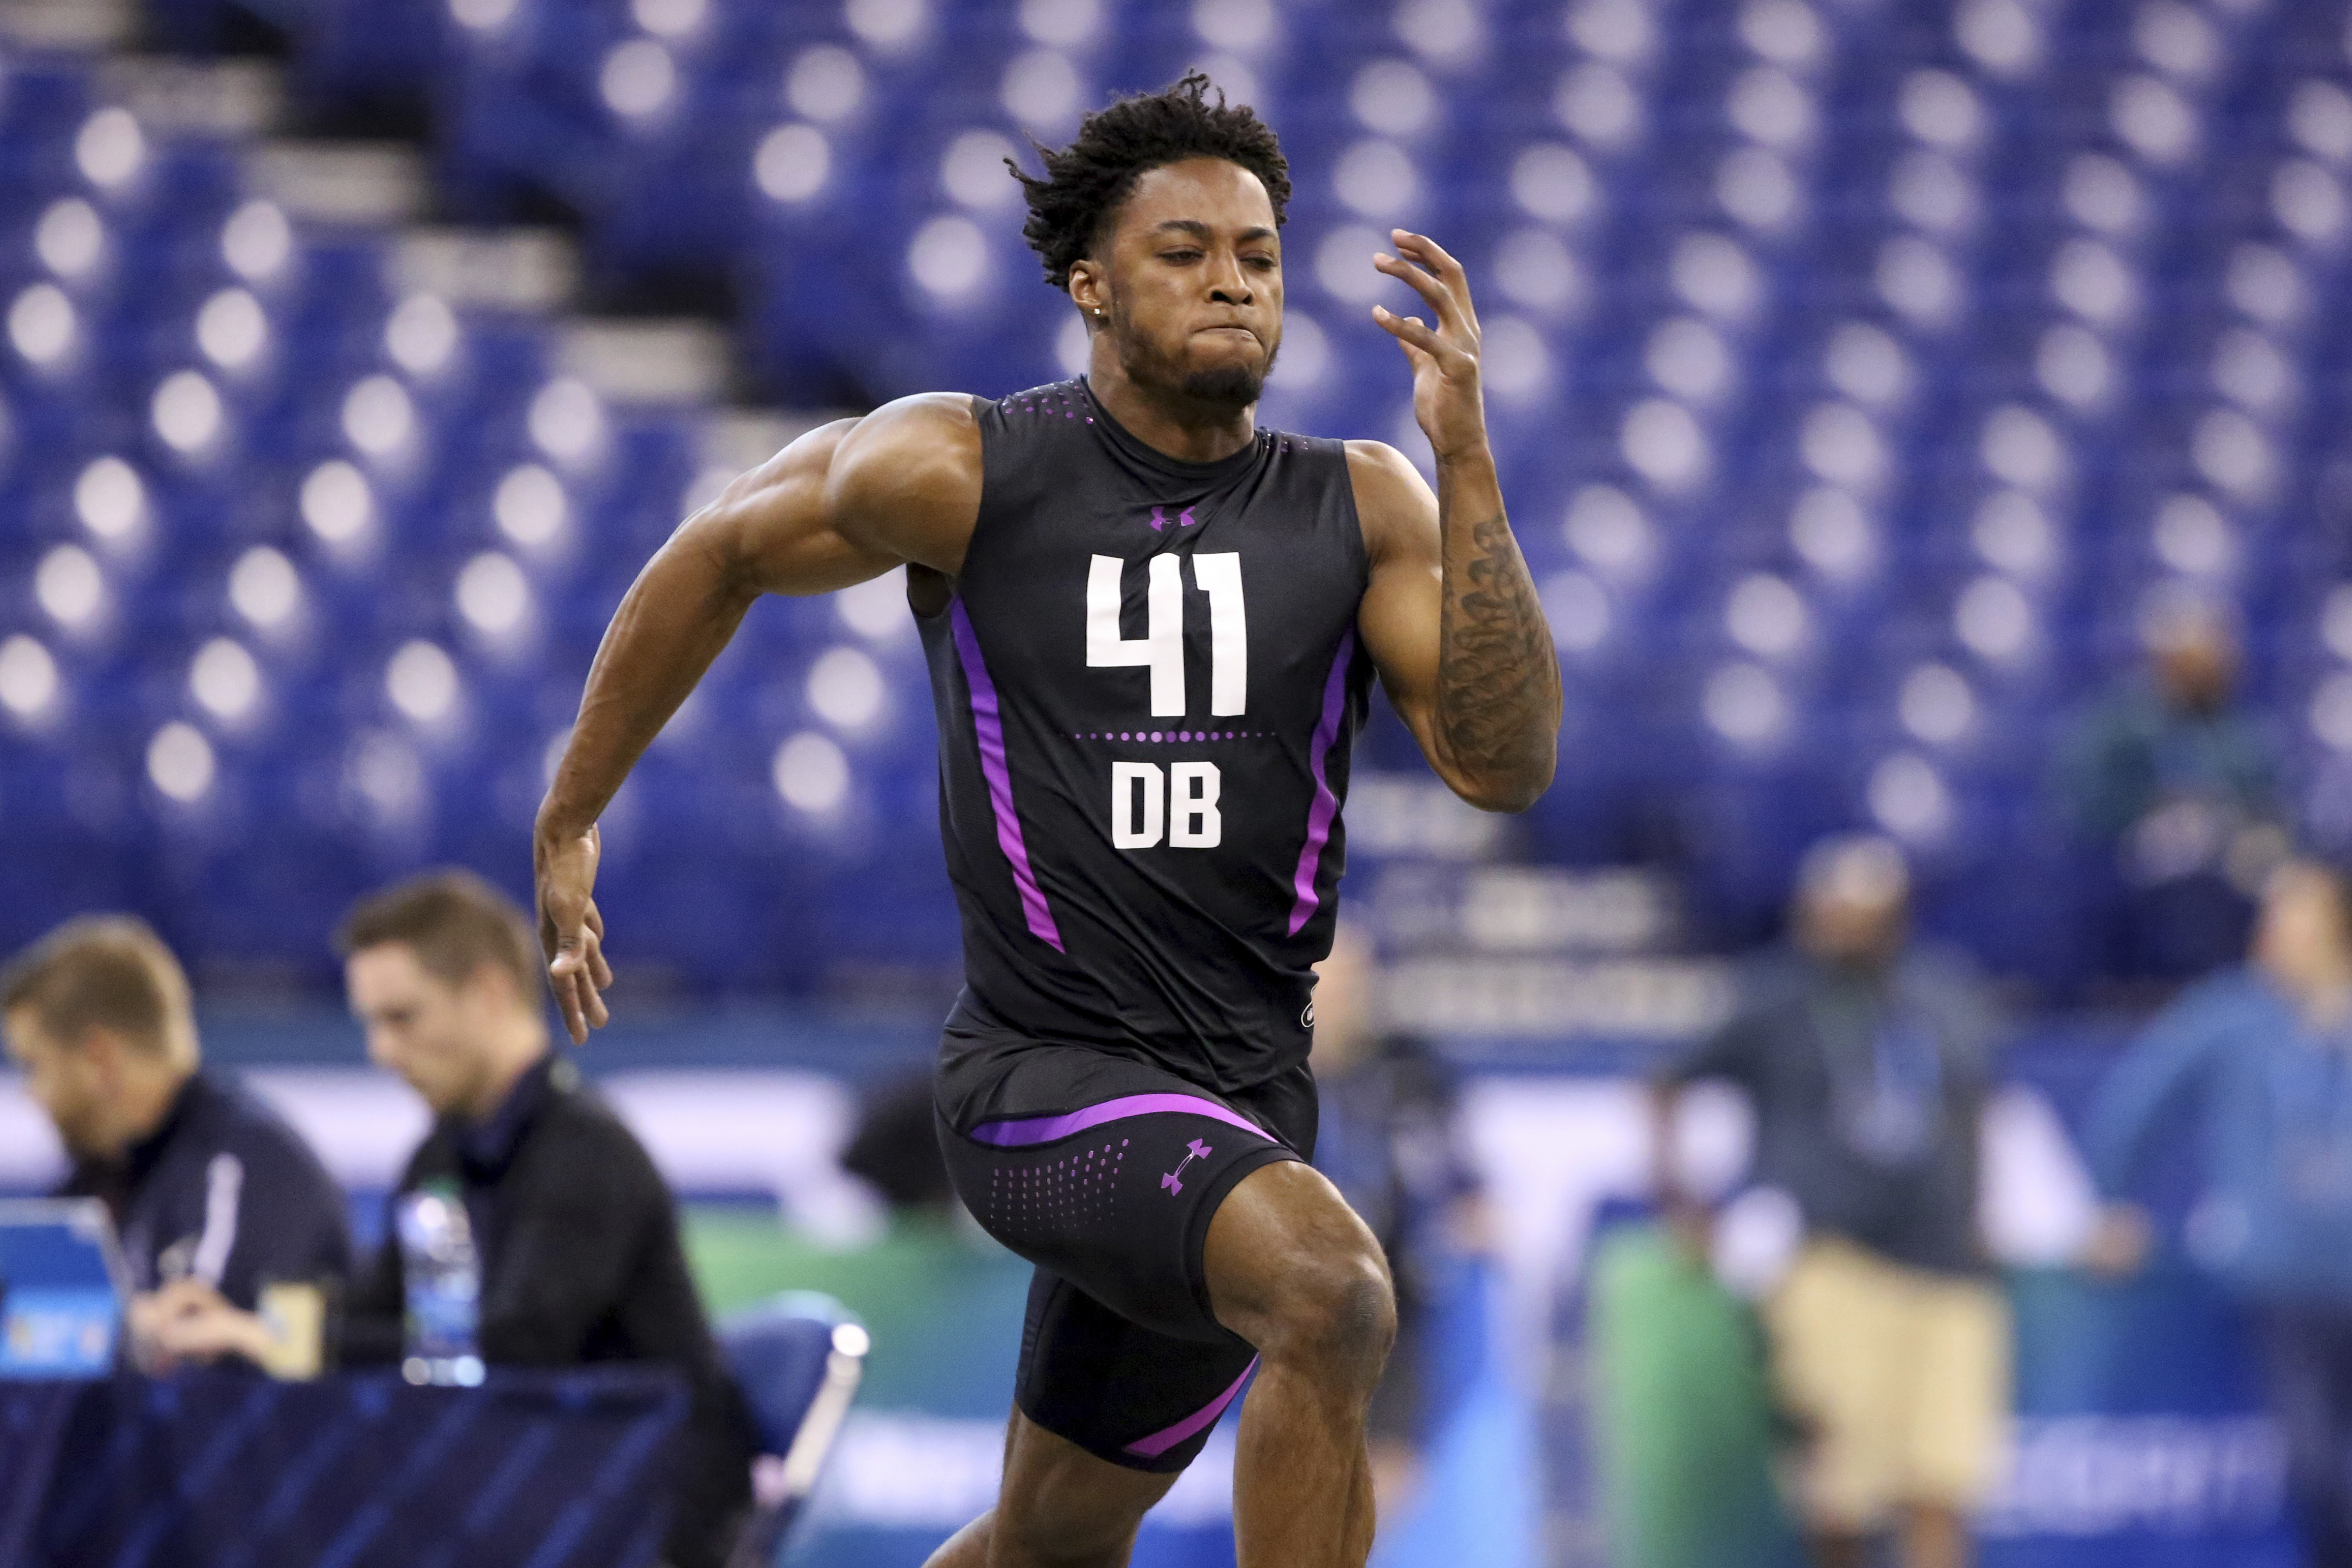 Ohio State´s Denzel Ward running the 40-yard dash at the NFL combine.